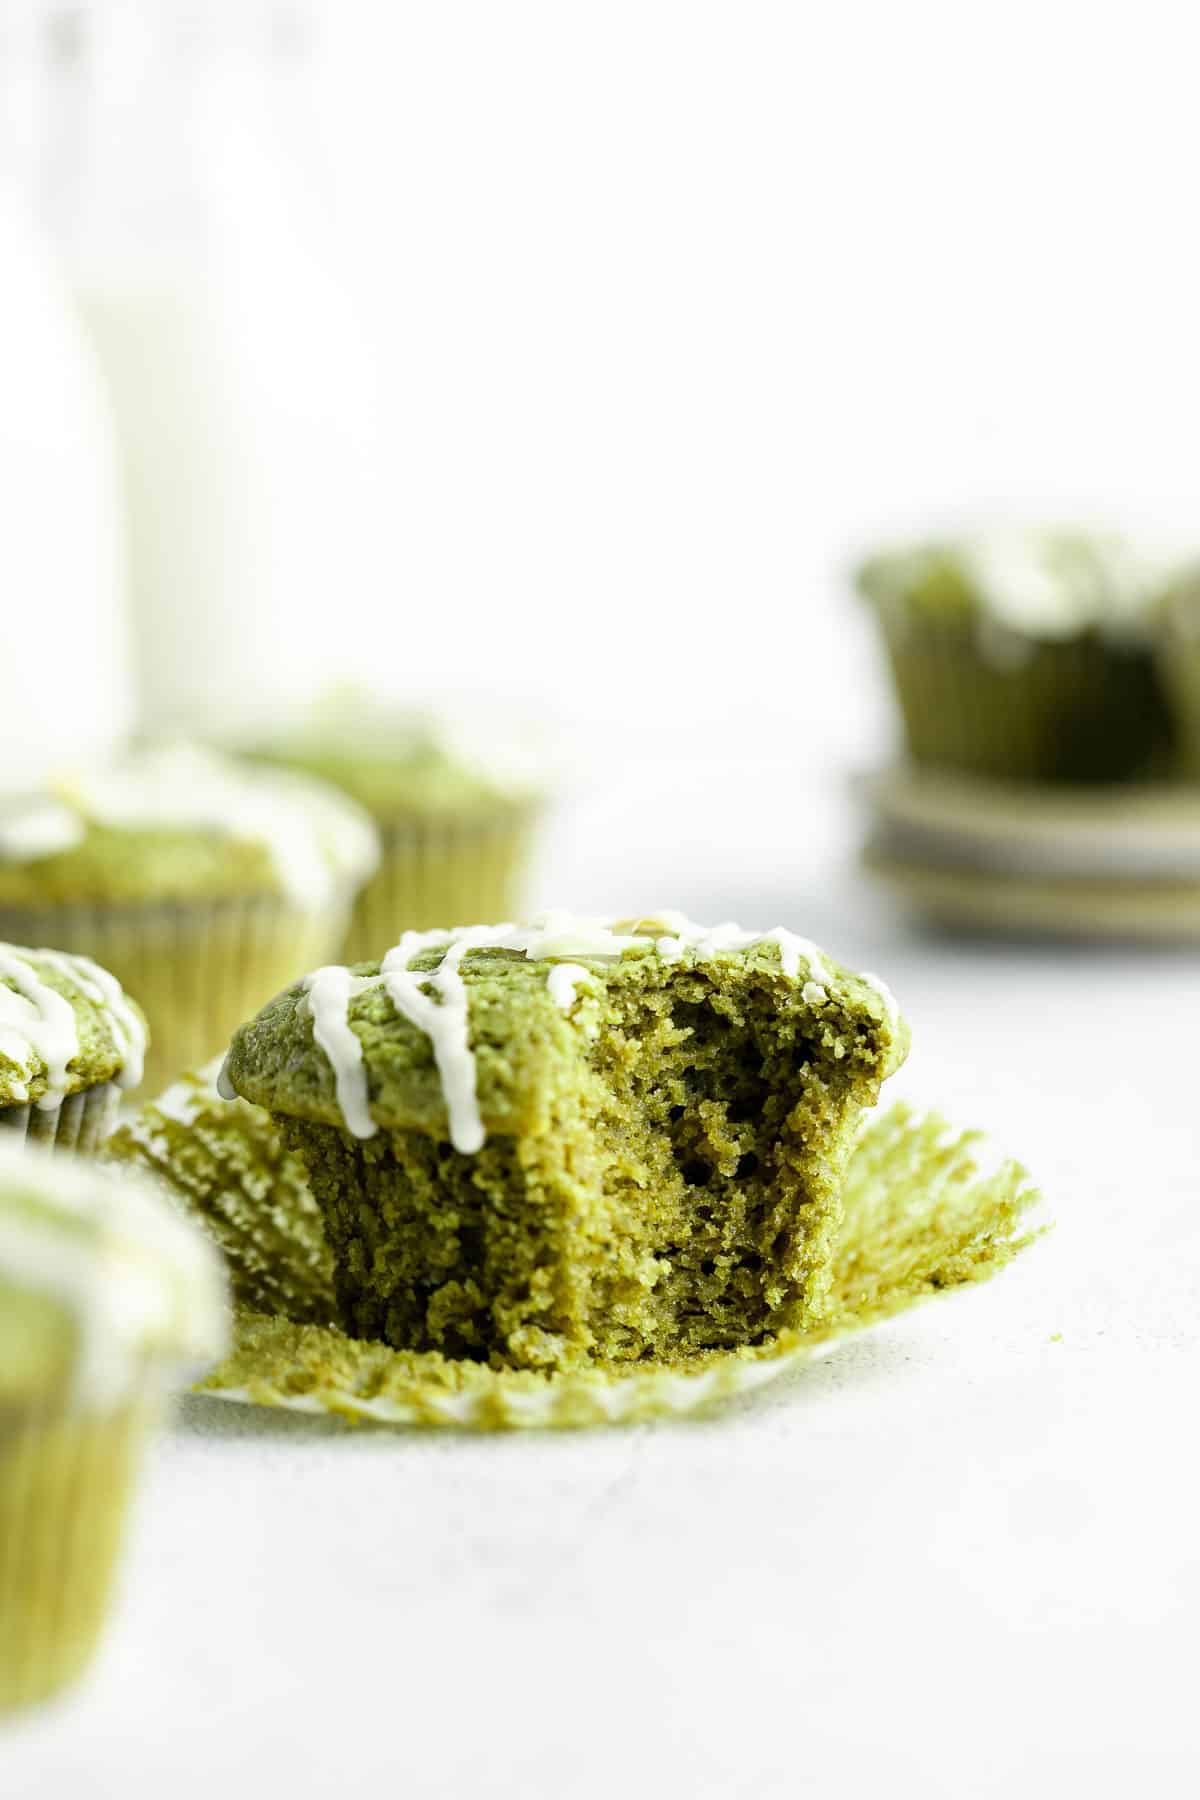 matcha muffins with one bite taken out to show fluffy texture